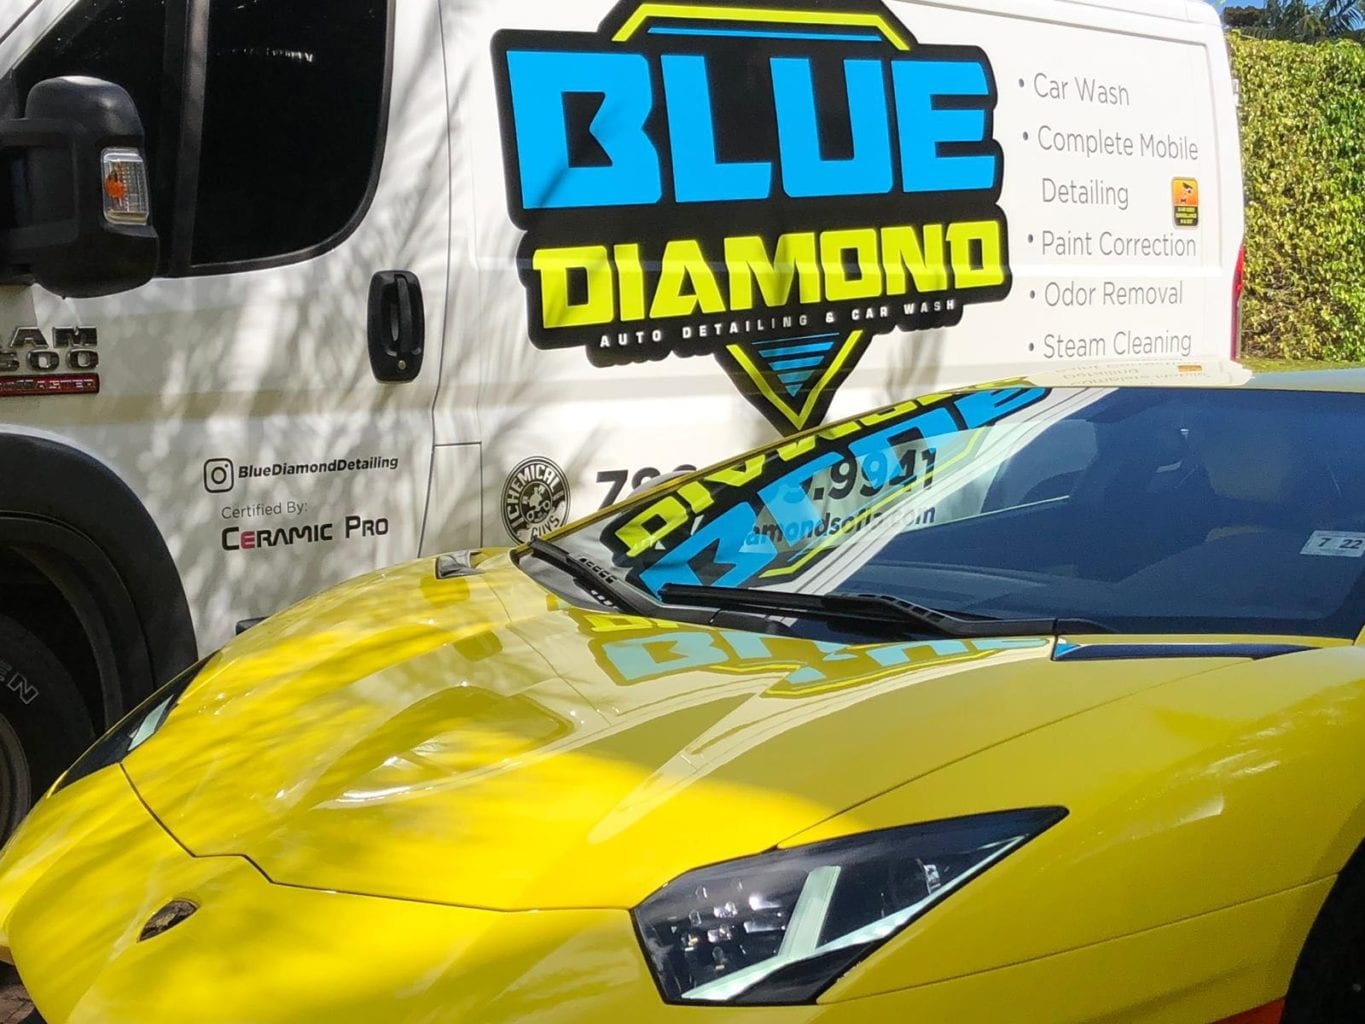 Auto Wash Mobile Car Wash Miami Blue Diamond Miami Car Detailing